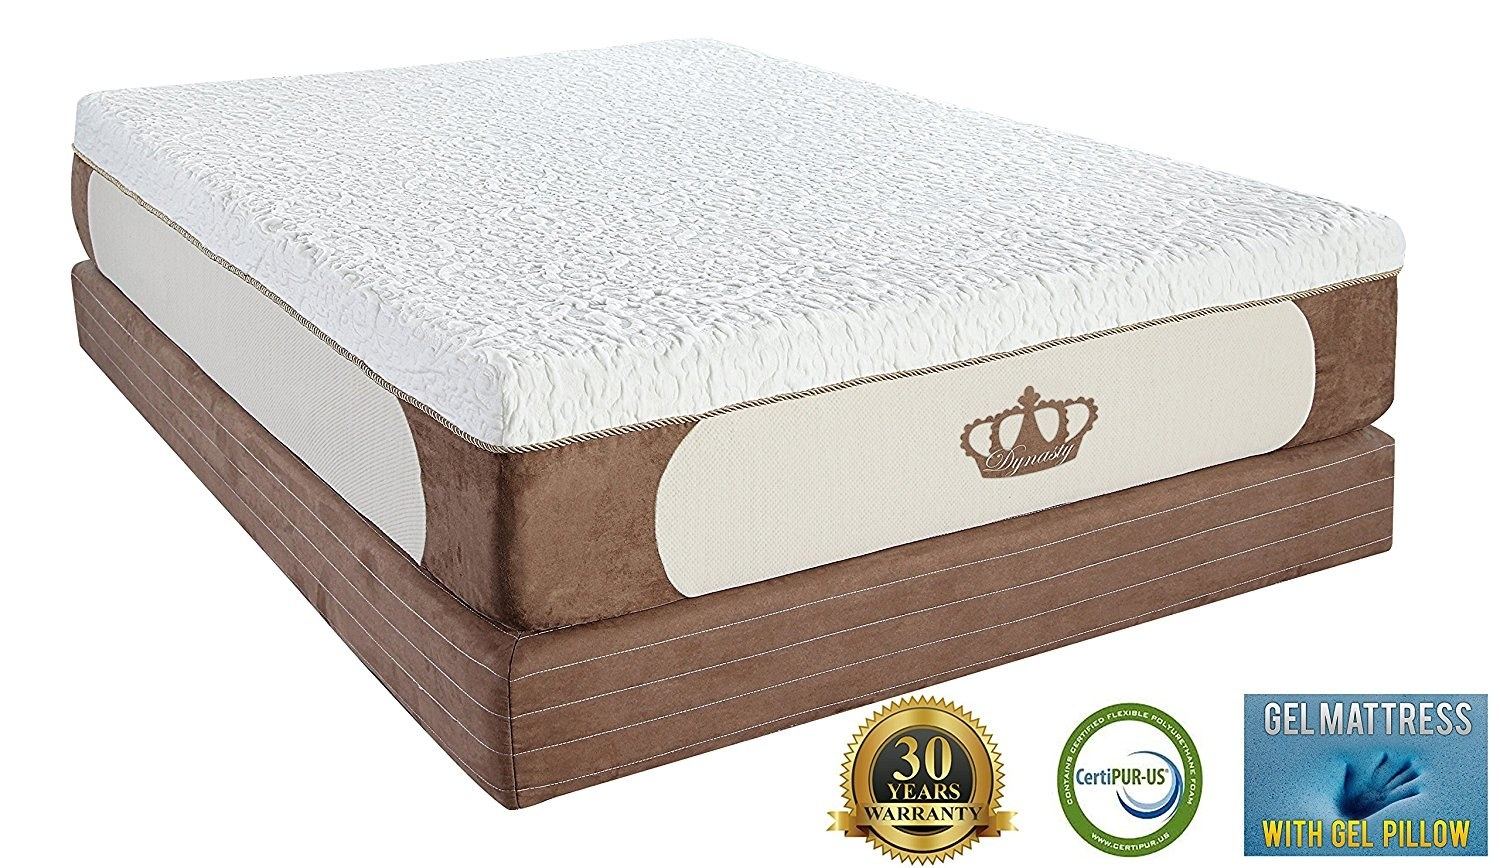 Expanded Queen Mattress 15 Of The Best Mattresses You Can Get On Amazon